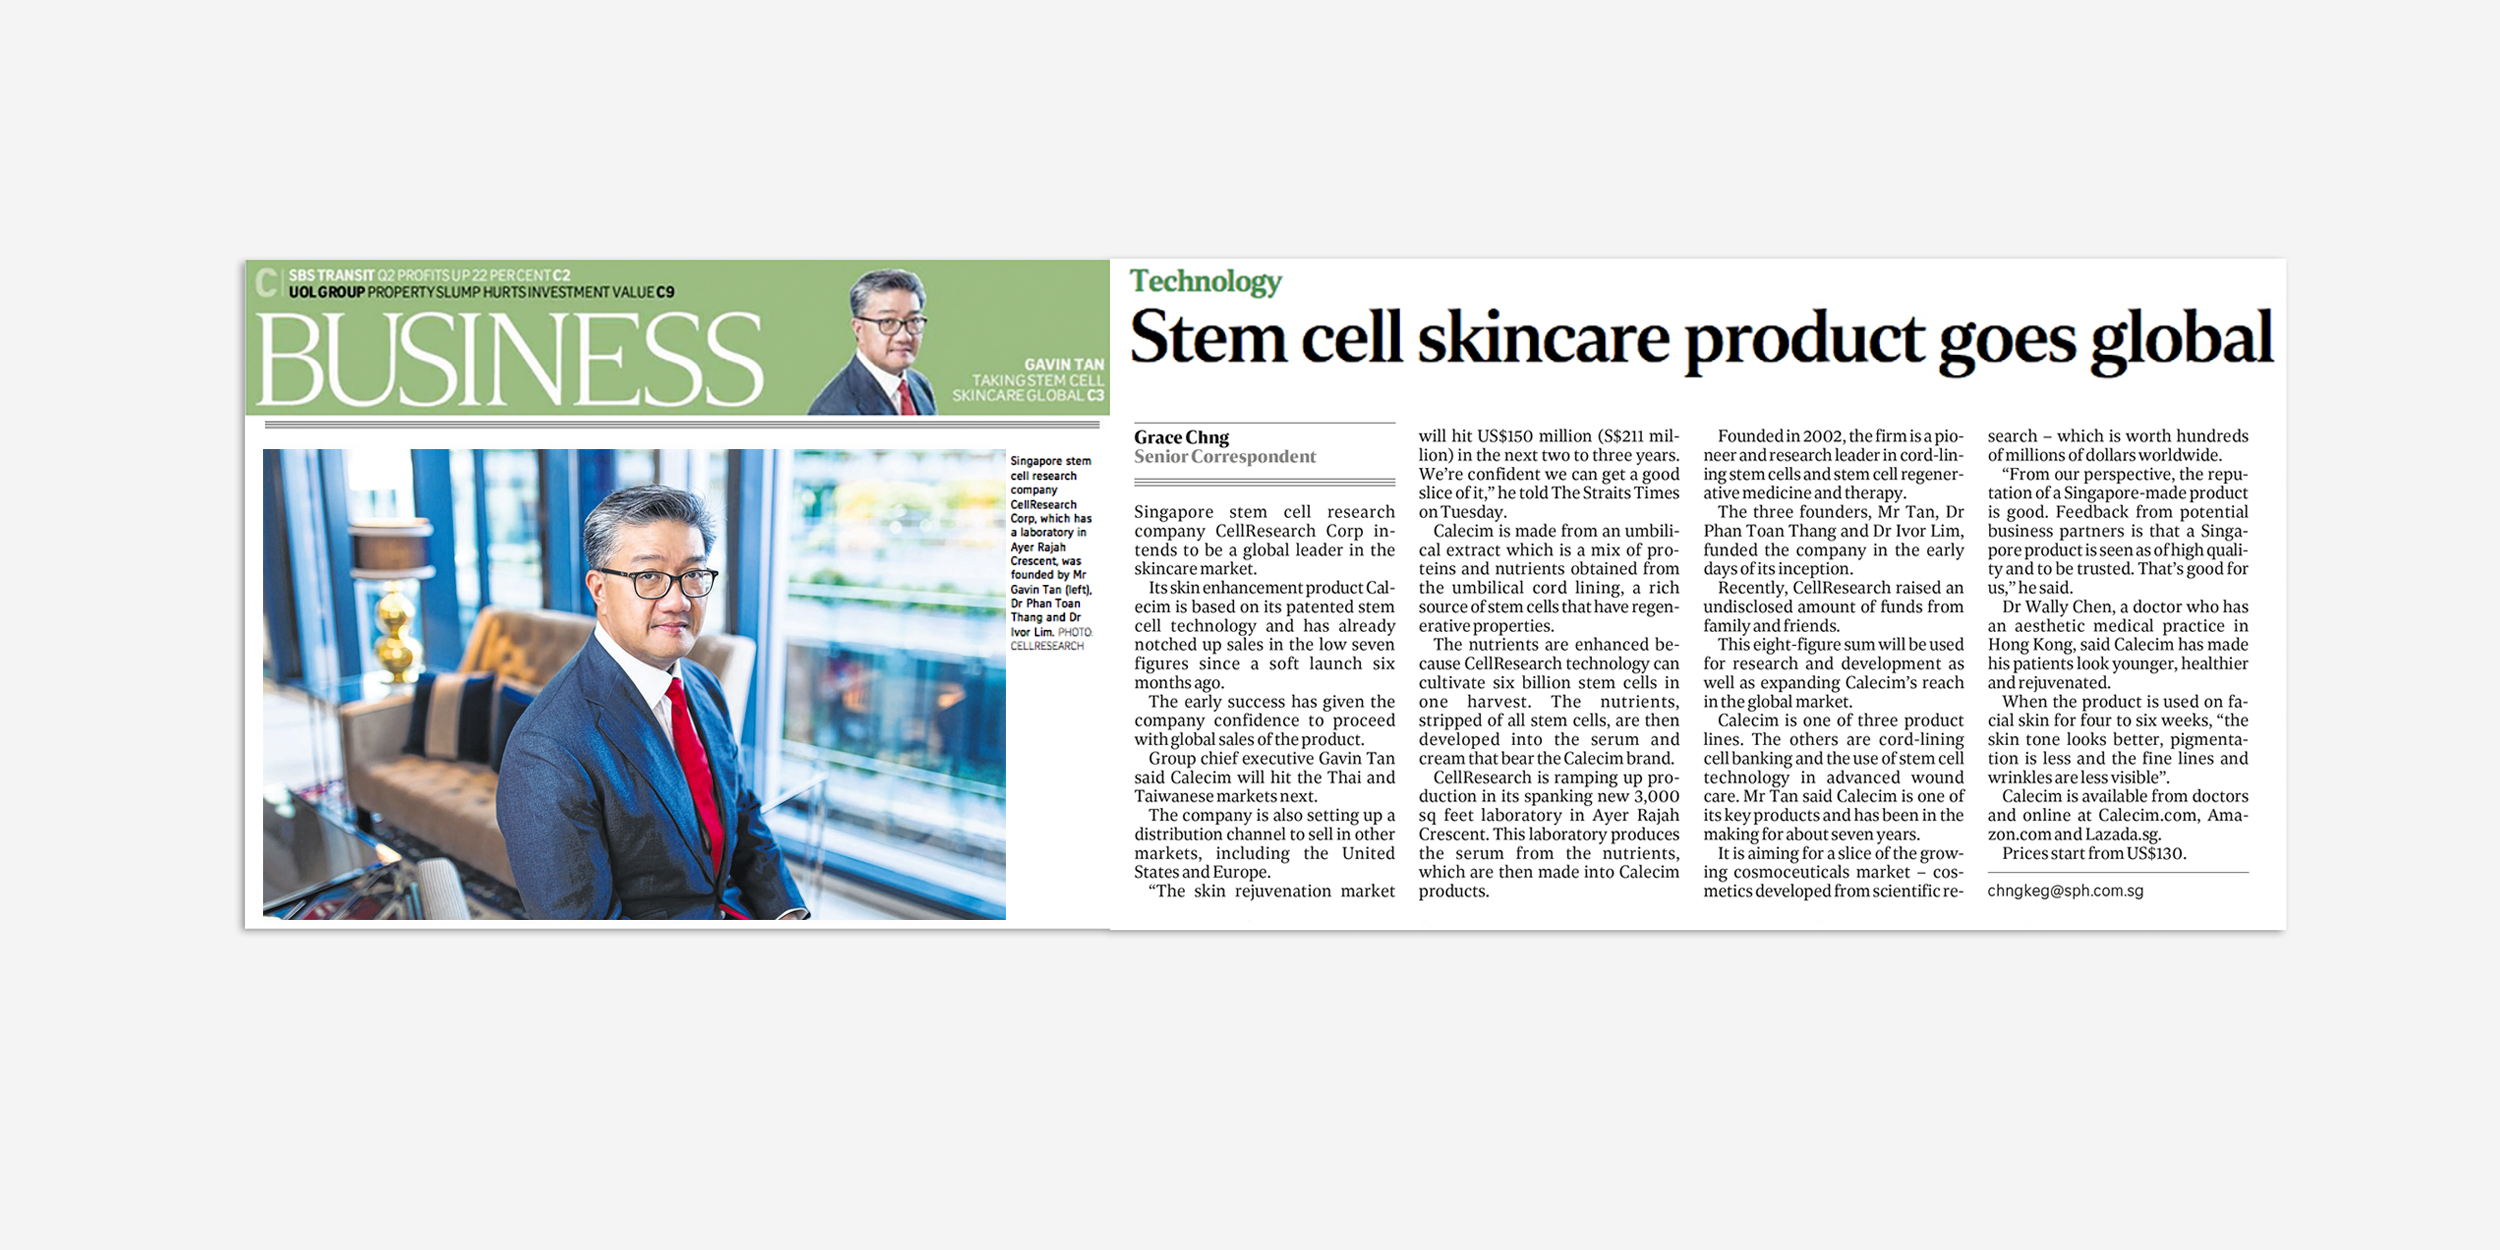 Stem cell skincare goes global